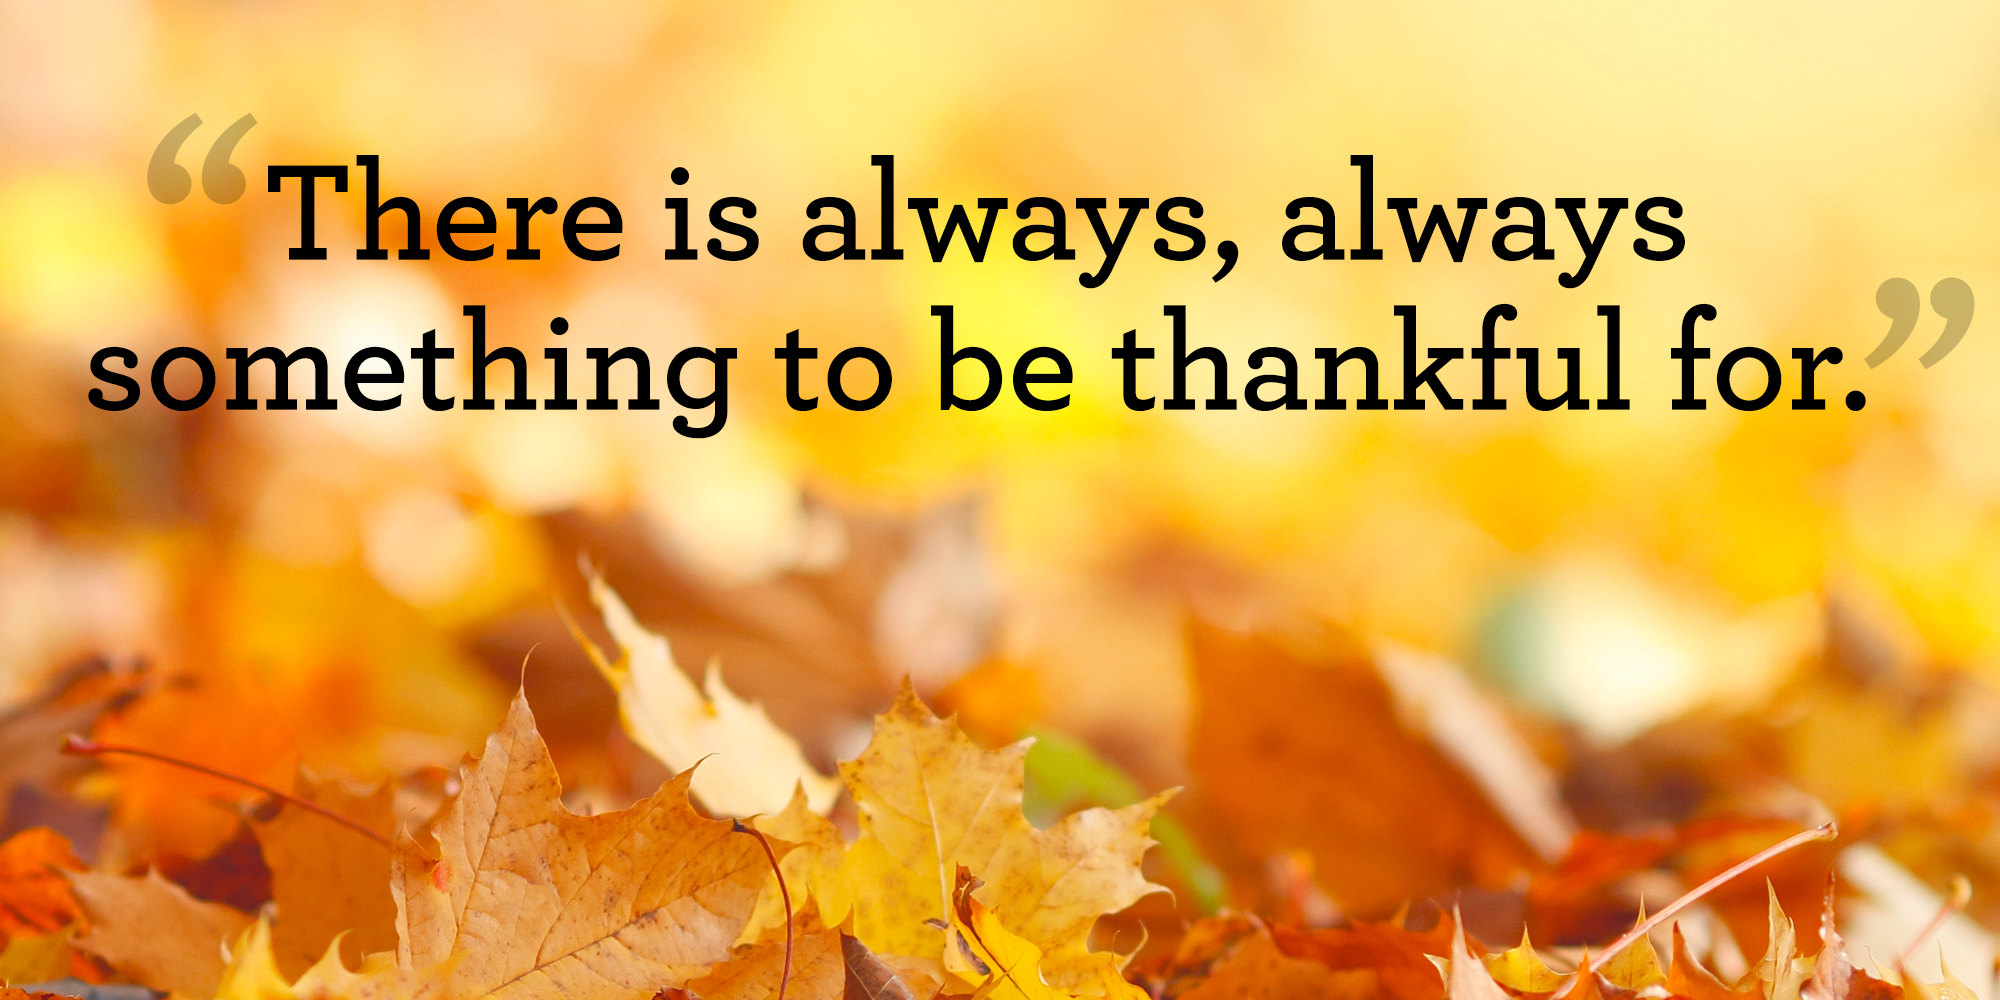 10 Best Thanksgiving Quotes Meaningful Thanksgiving Sayings